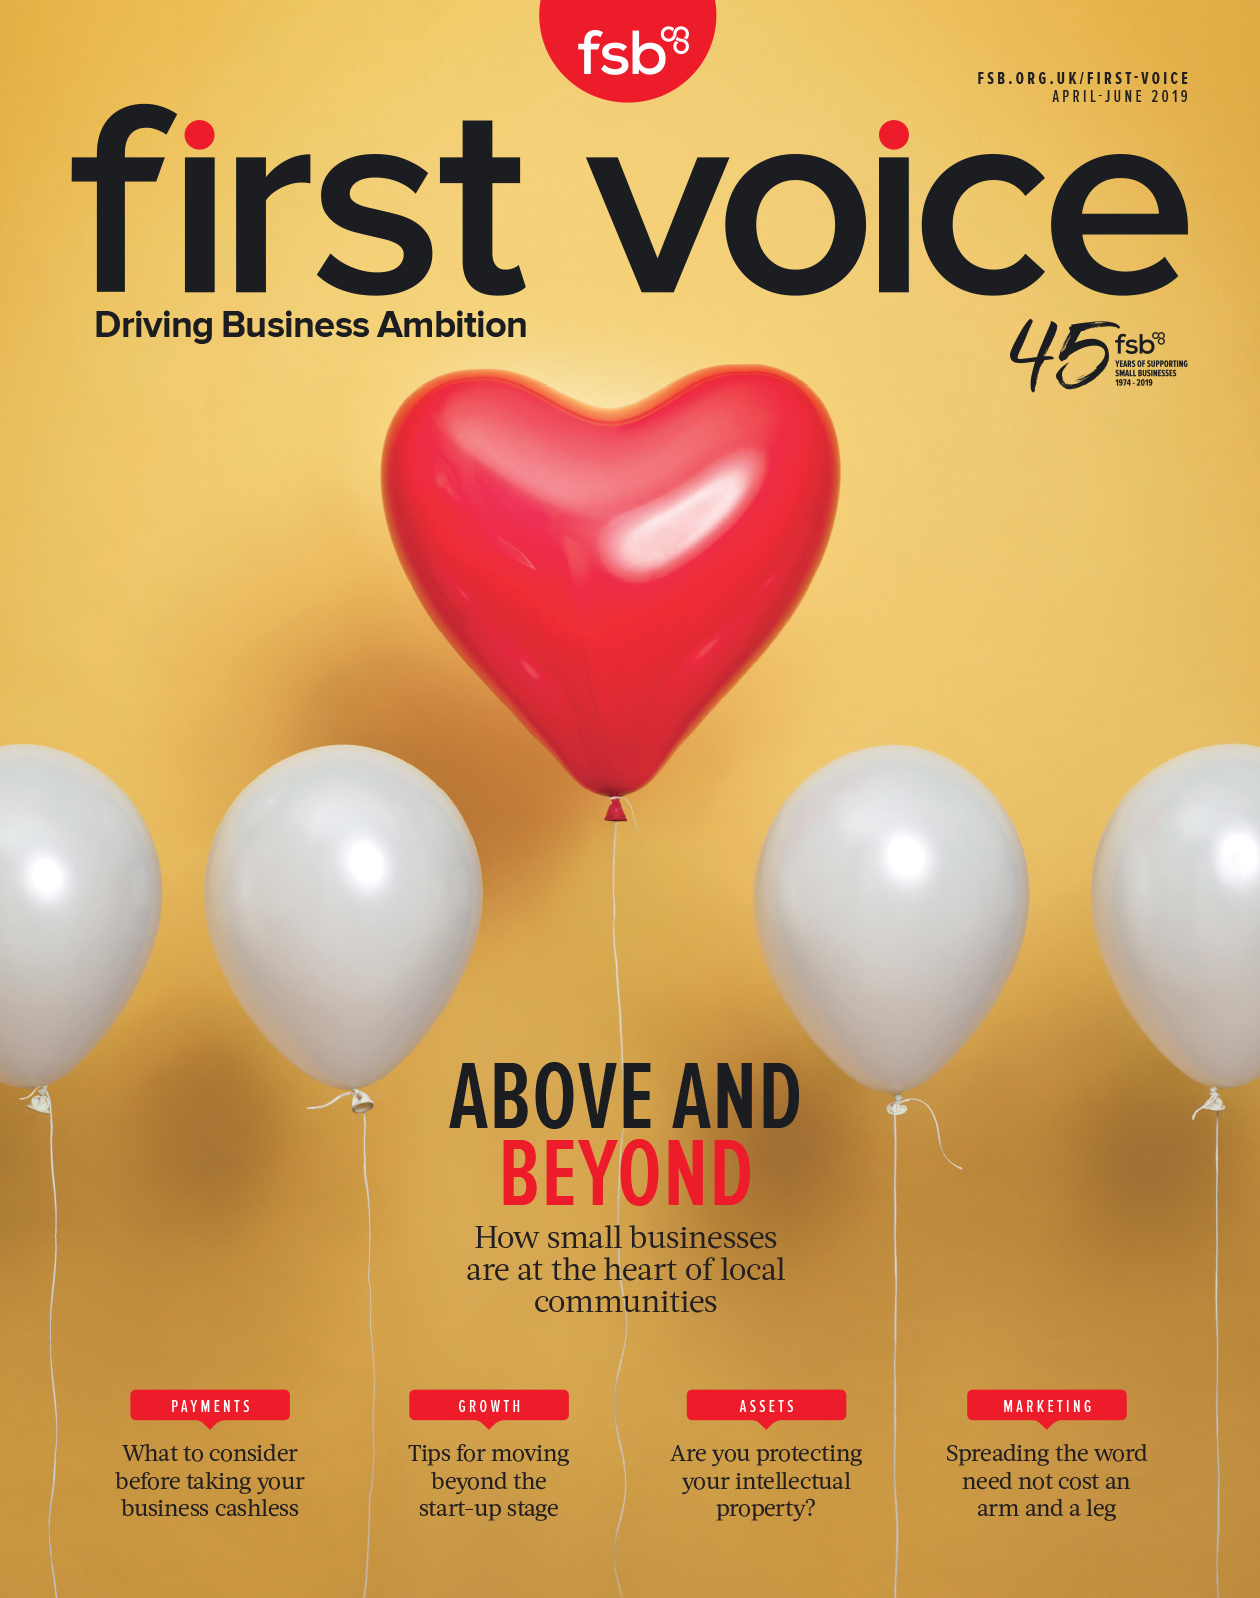 2. First Voice April-June 2018